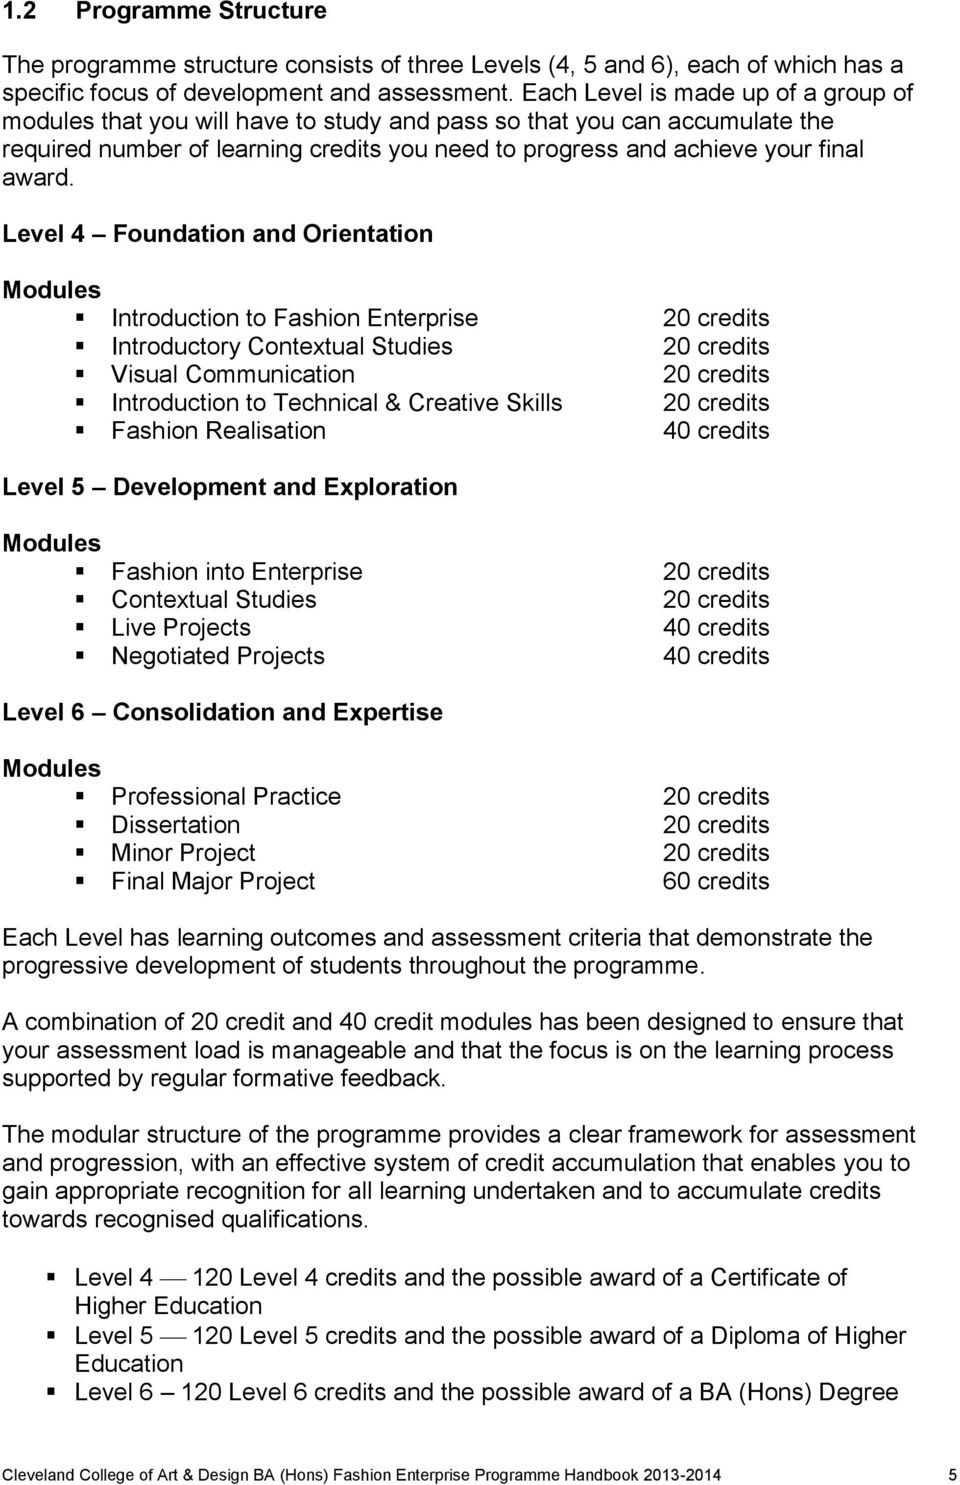 Level 4 Foundation and Orientation Modules Introduction to Fashion Enterprise 20 credits Introductory Contextual Studies 20 credits Visual Communication 20 credits Introduction to Technical &